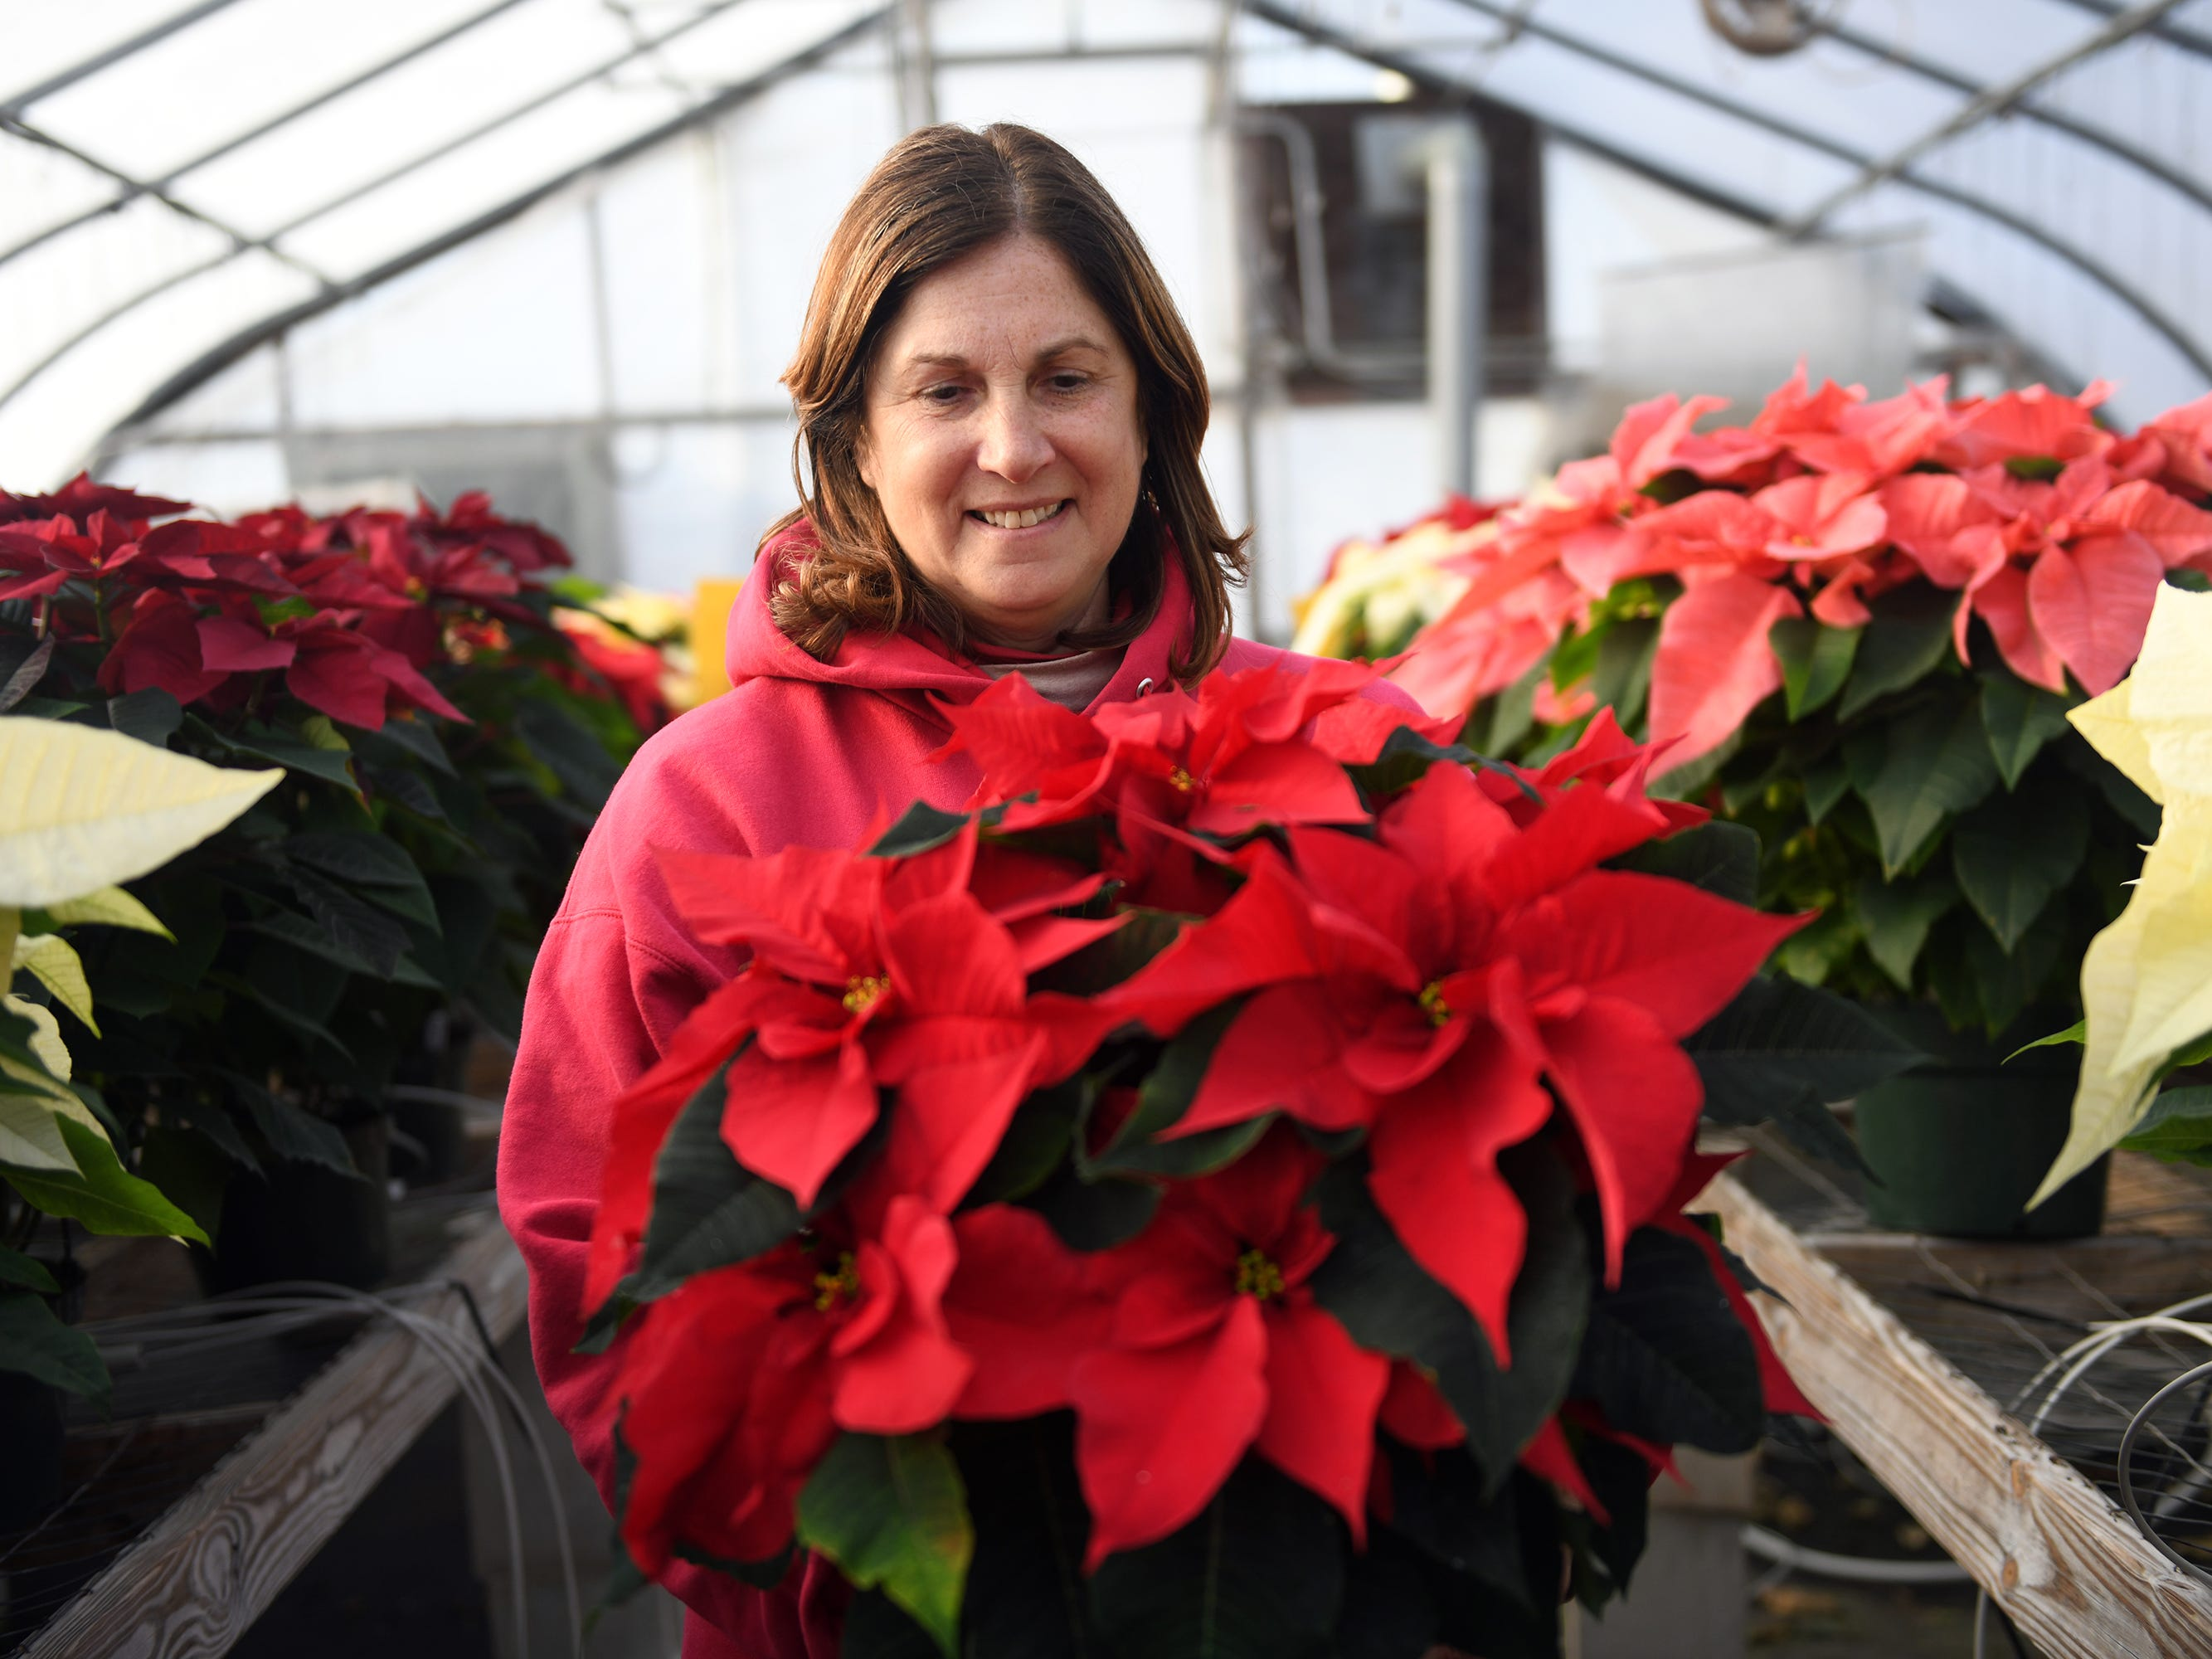 Patty Huffman holds one of the poinsettias for sale at her farm in Vineland. Huffman Farms starts to grow poinsettias in July so they are ready for the Christmas season at 296 S. Blue Bell Road in Vineland.